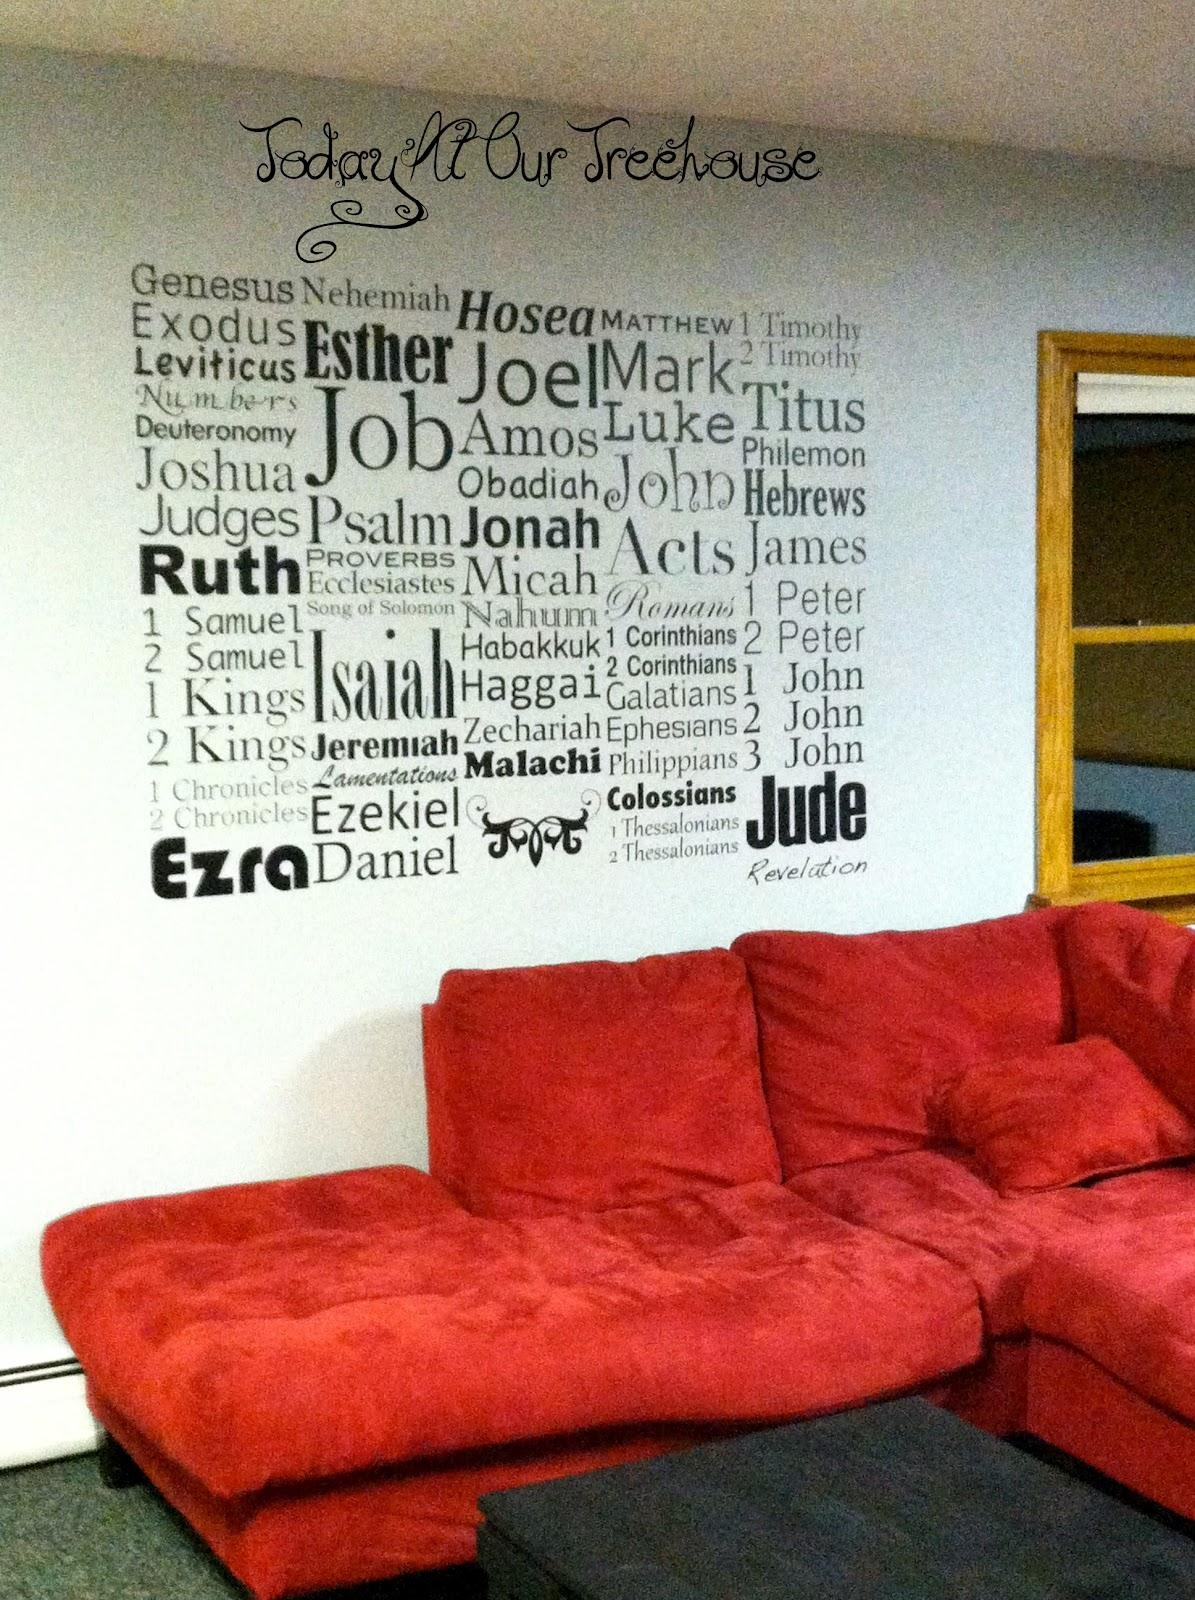 Today At Our Treehouse: Books Of The Bible Wall Art Intended For Biblical Wall Art (View 19 of 20)